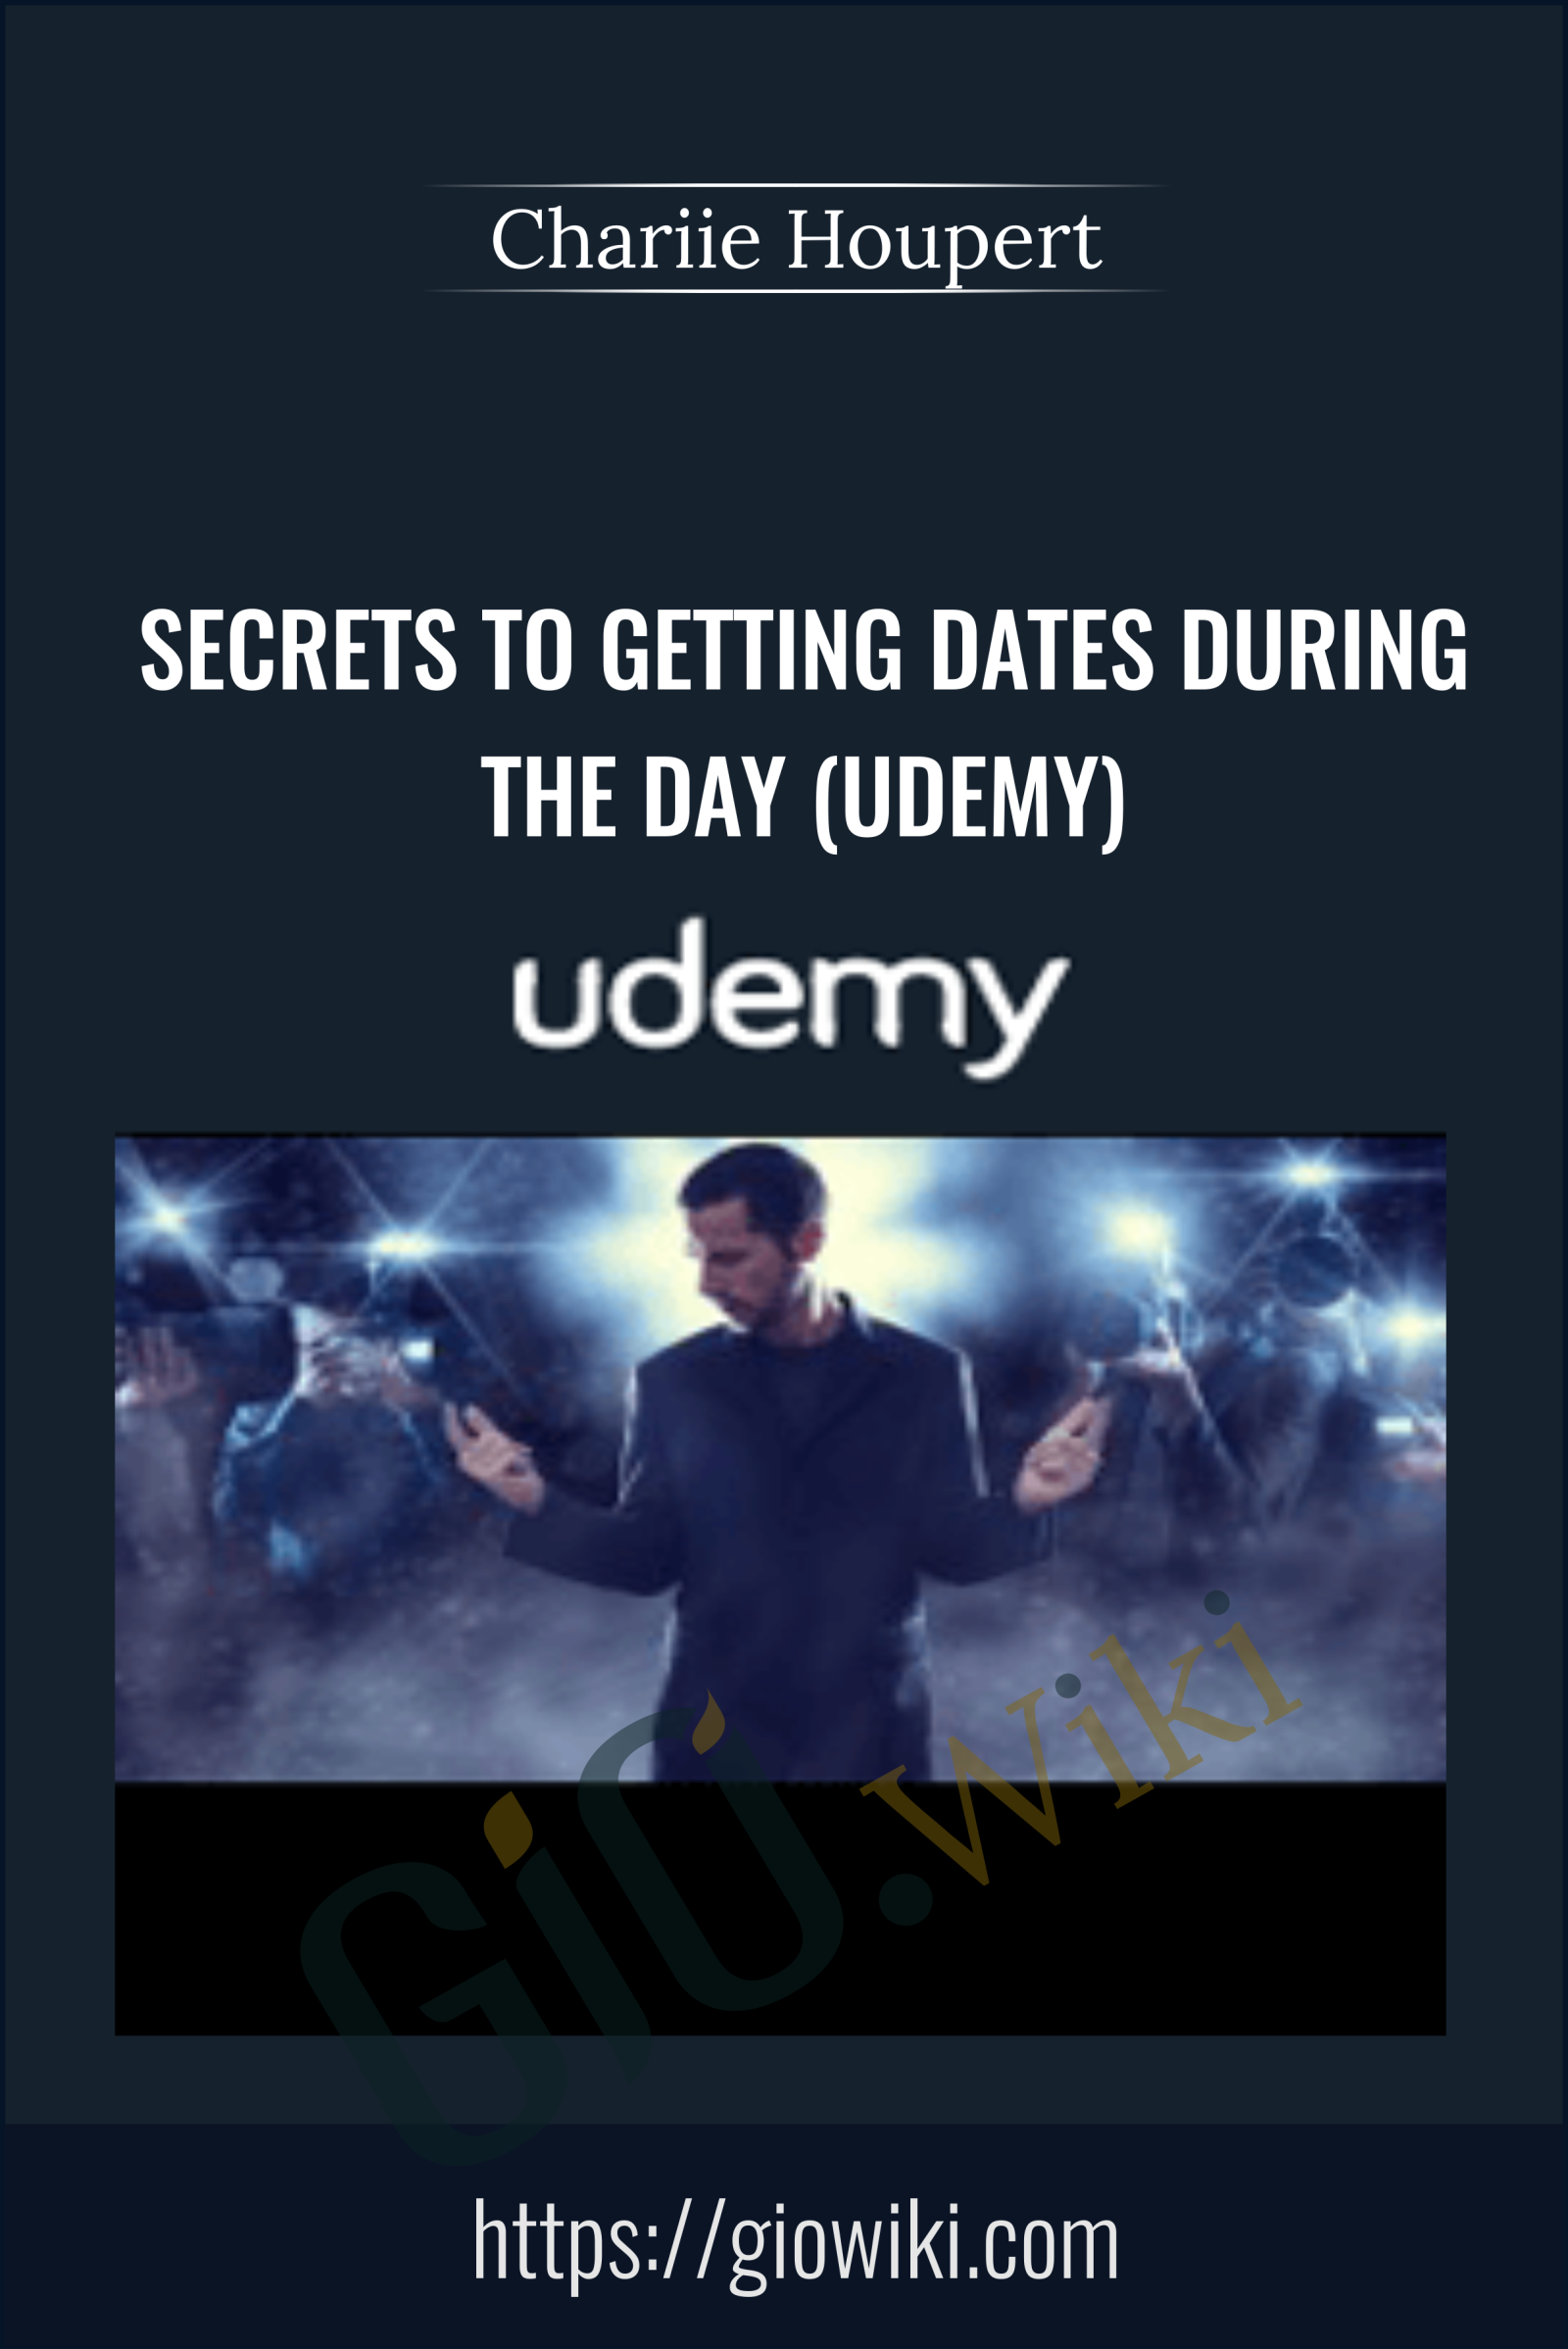 Secrets to Getting Dates During the Day (Udemy) - Chariie Houpert